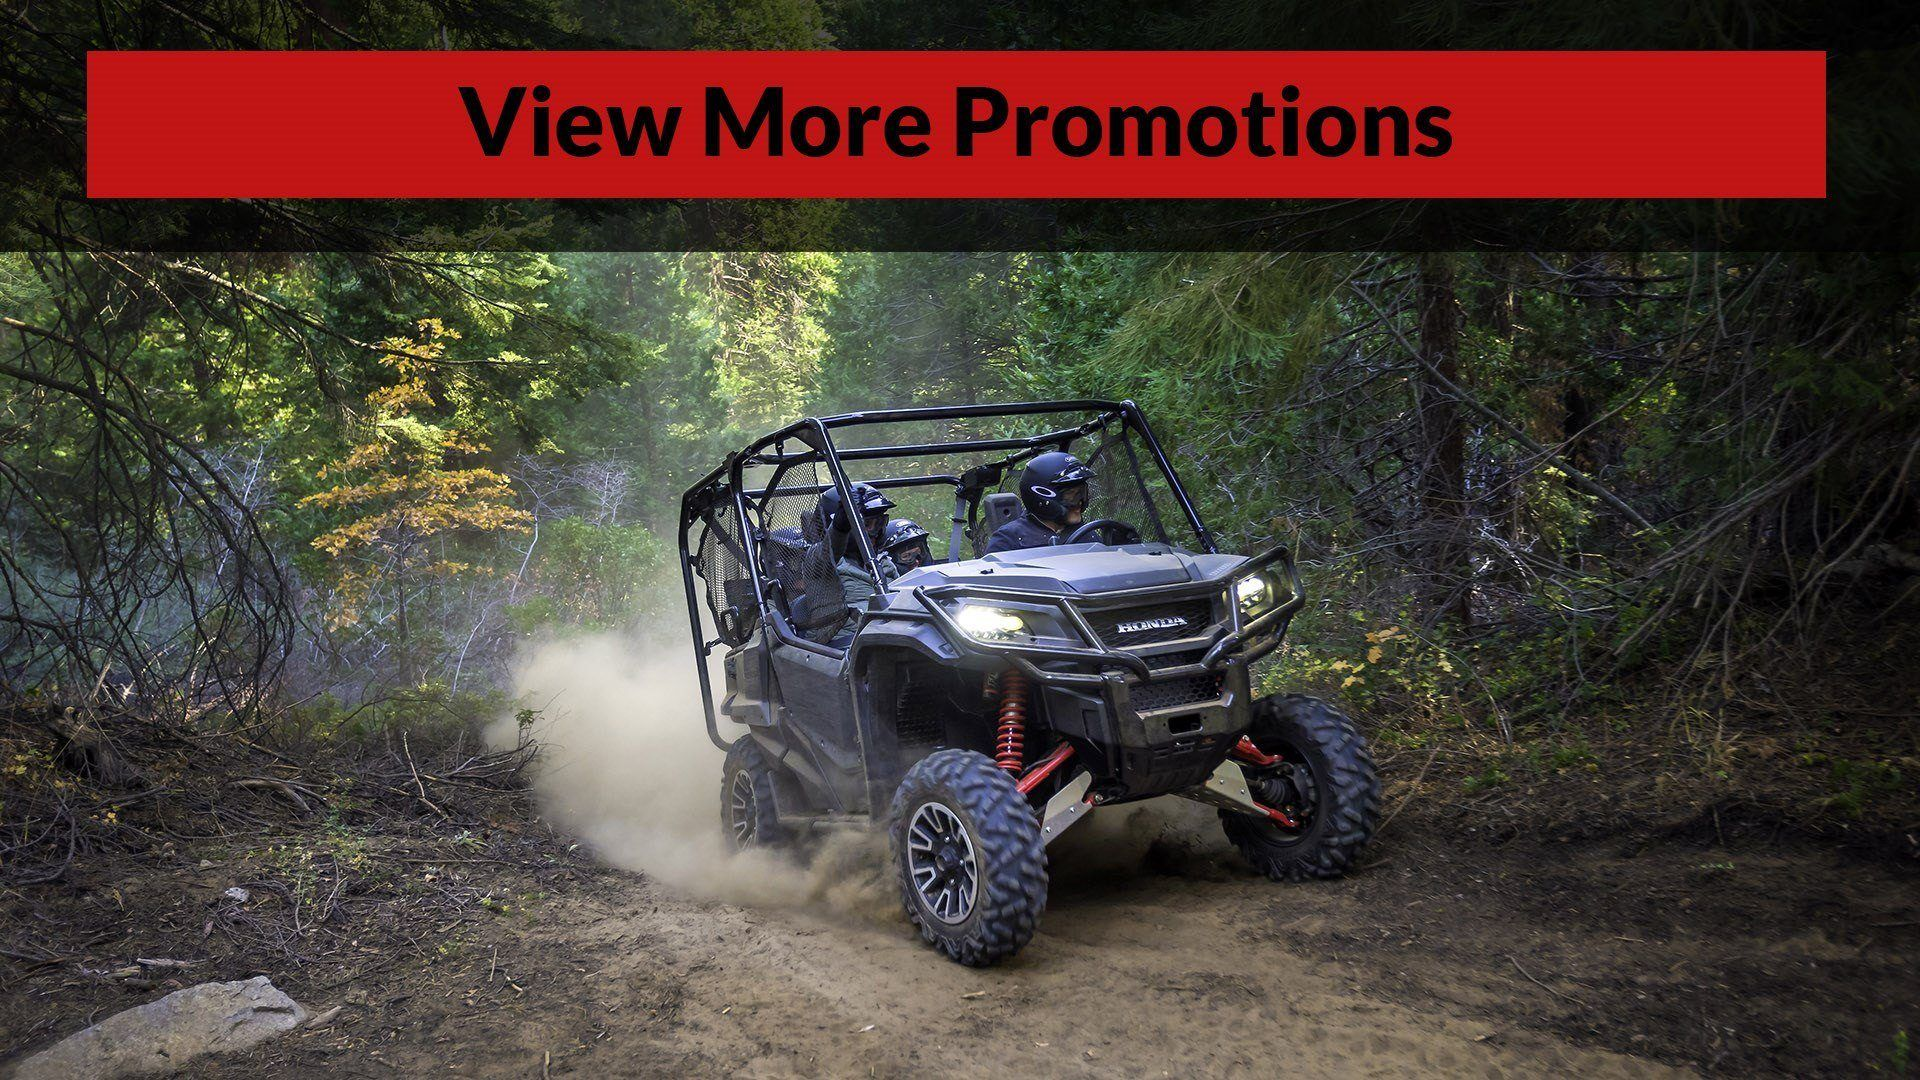 Shop Honda Promotions at Christman's Cycle Sales in Palatine Bridge, NY